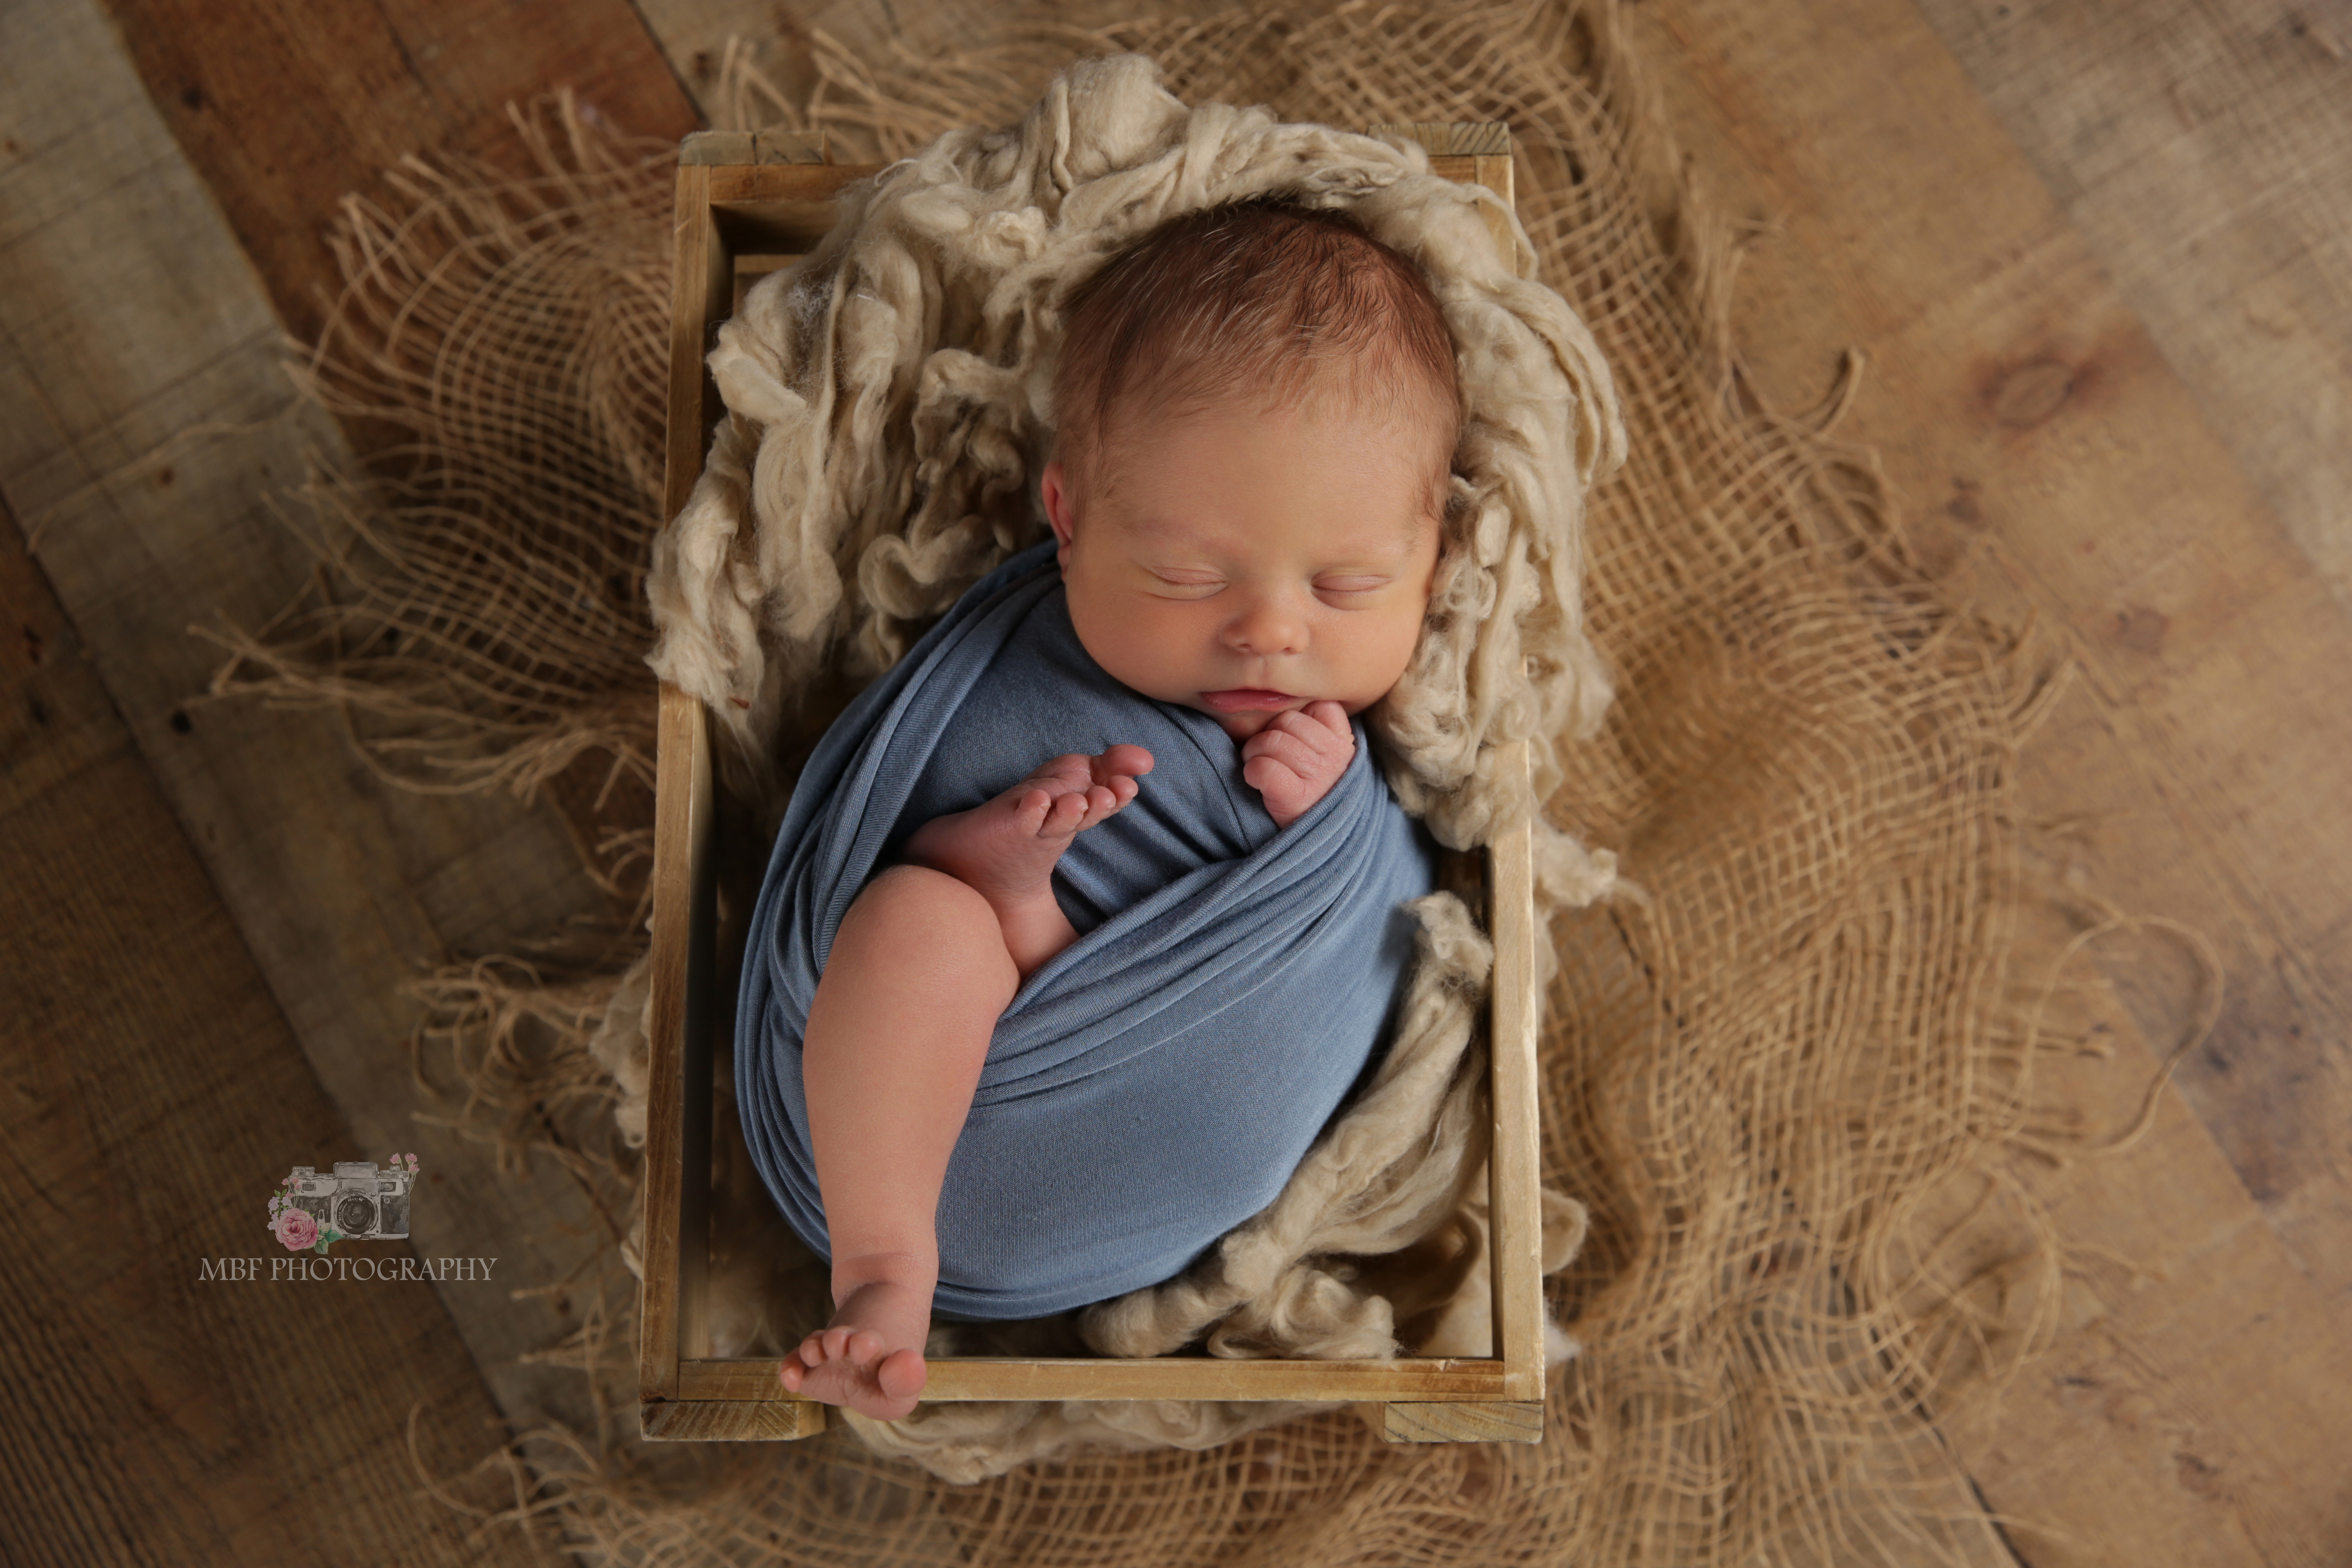 Newborn photographer Las Vegas, MBF